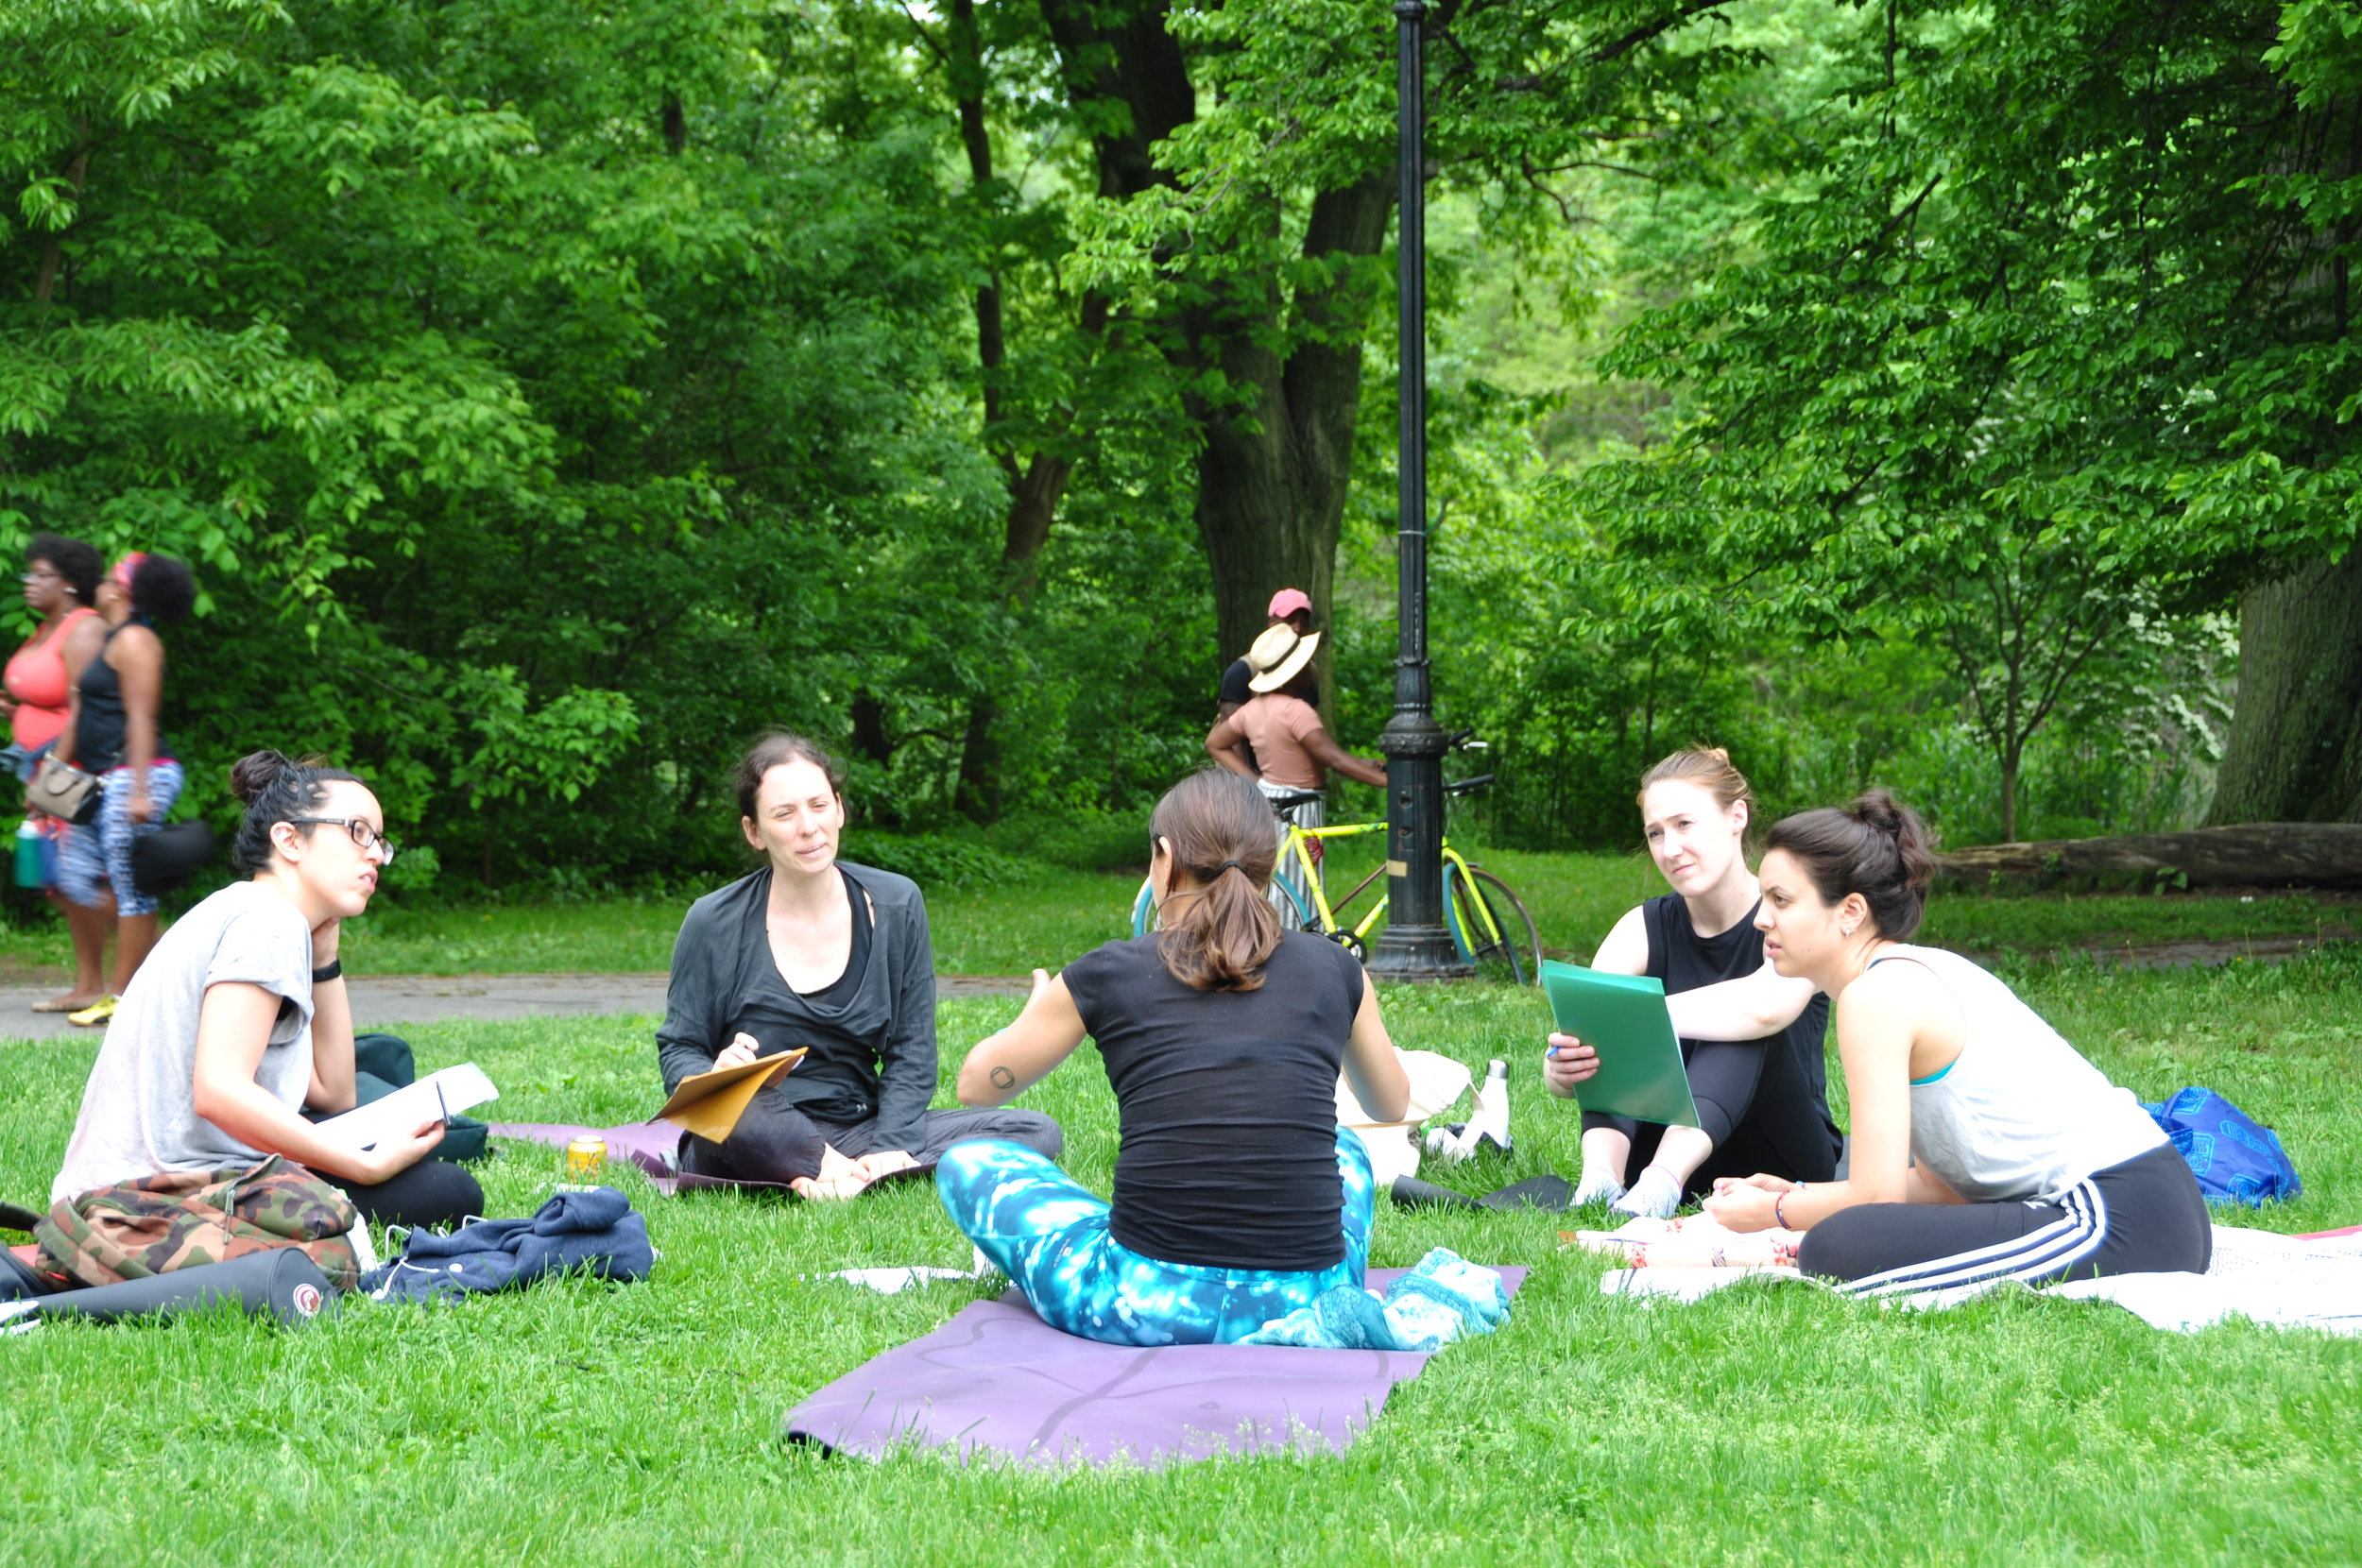 Small group coaching session in Prospect Park with Dominique